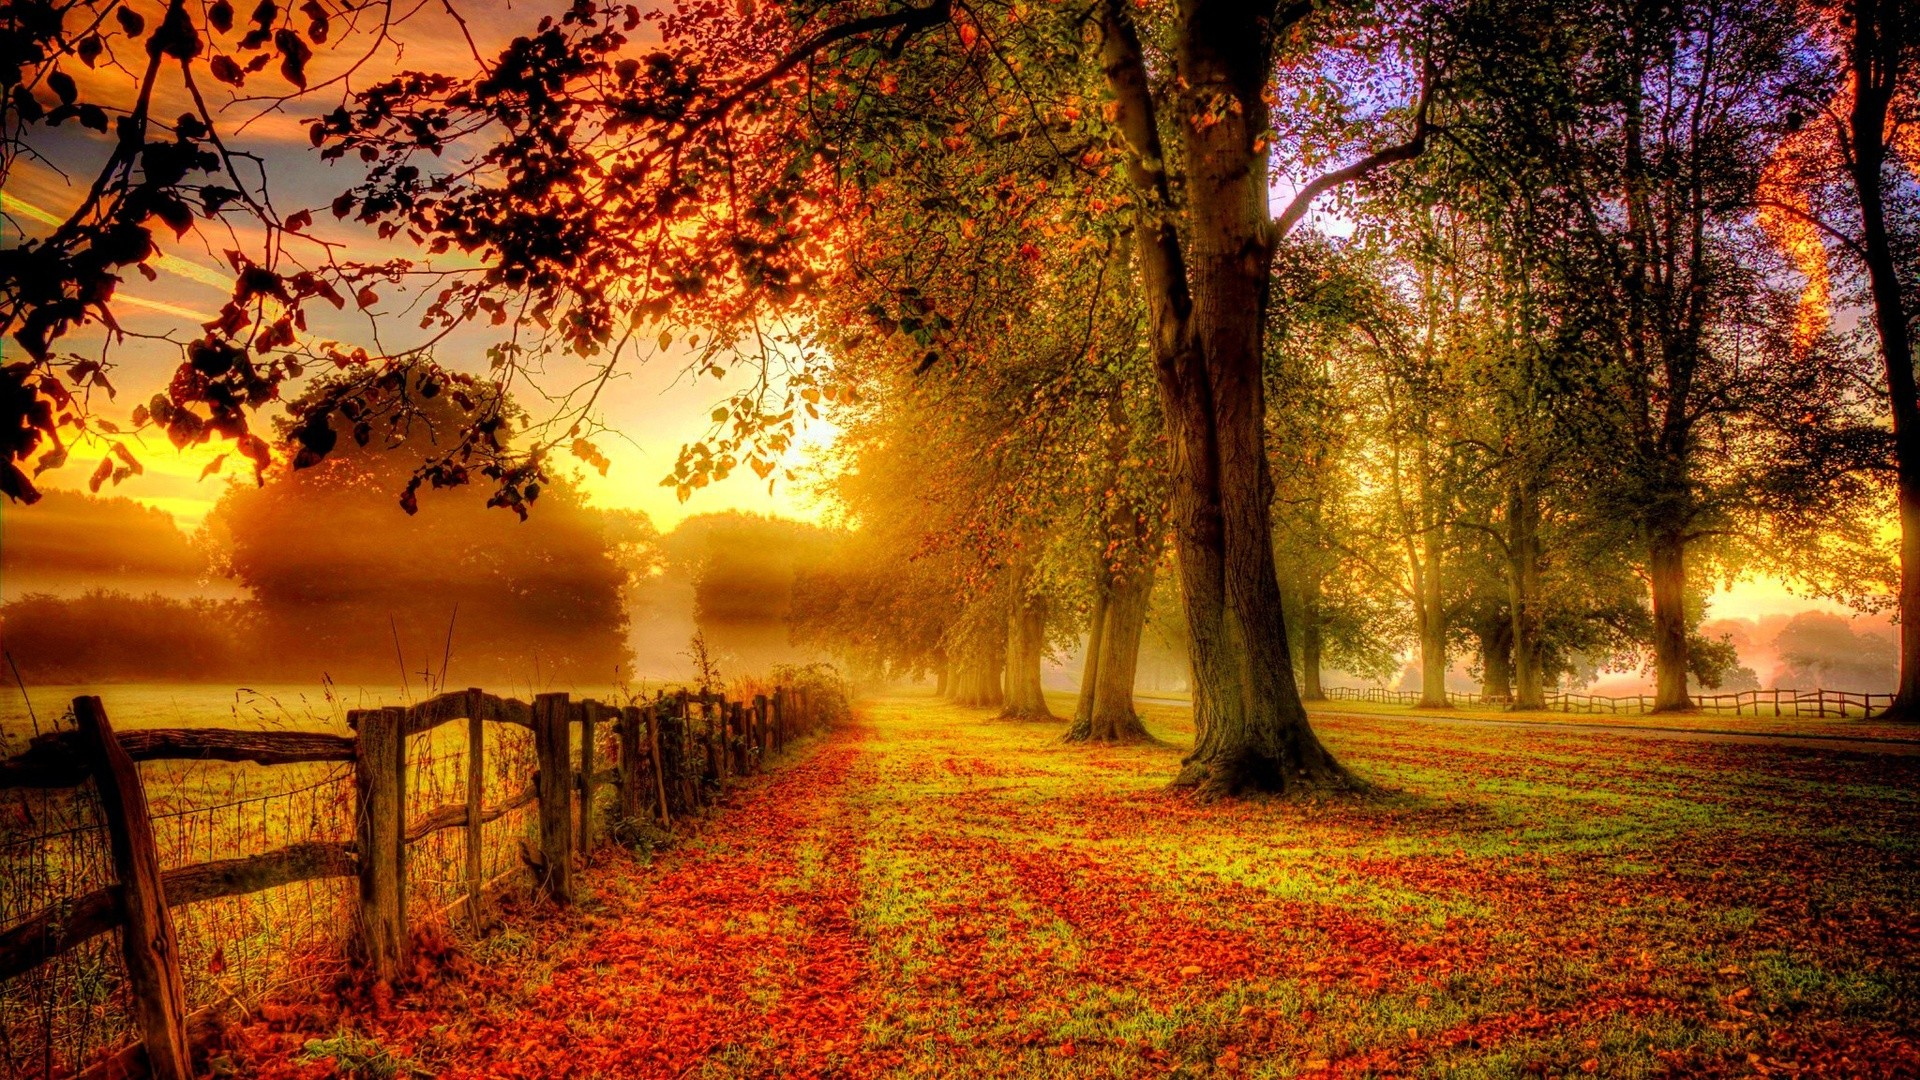 42 Autumn backgrounds ·â'  Download free stunning HD wallpapers